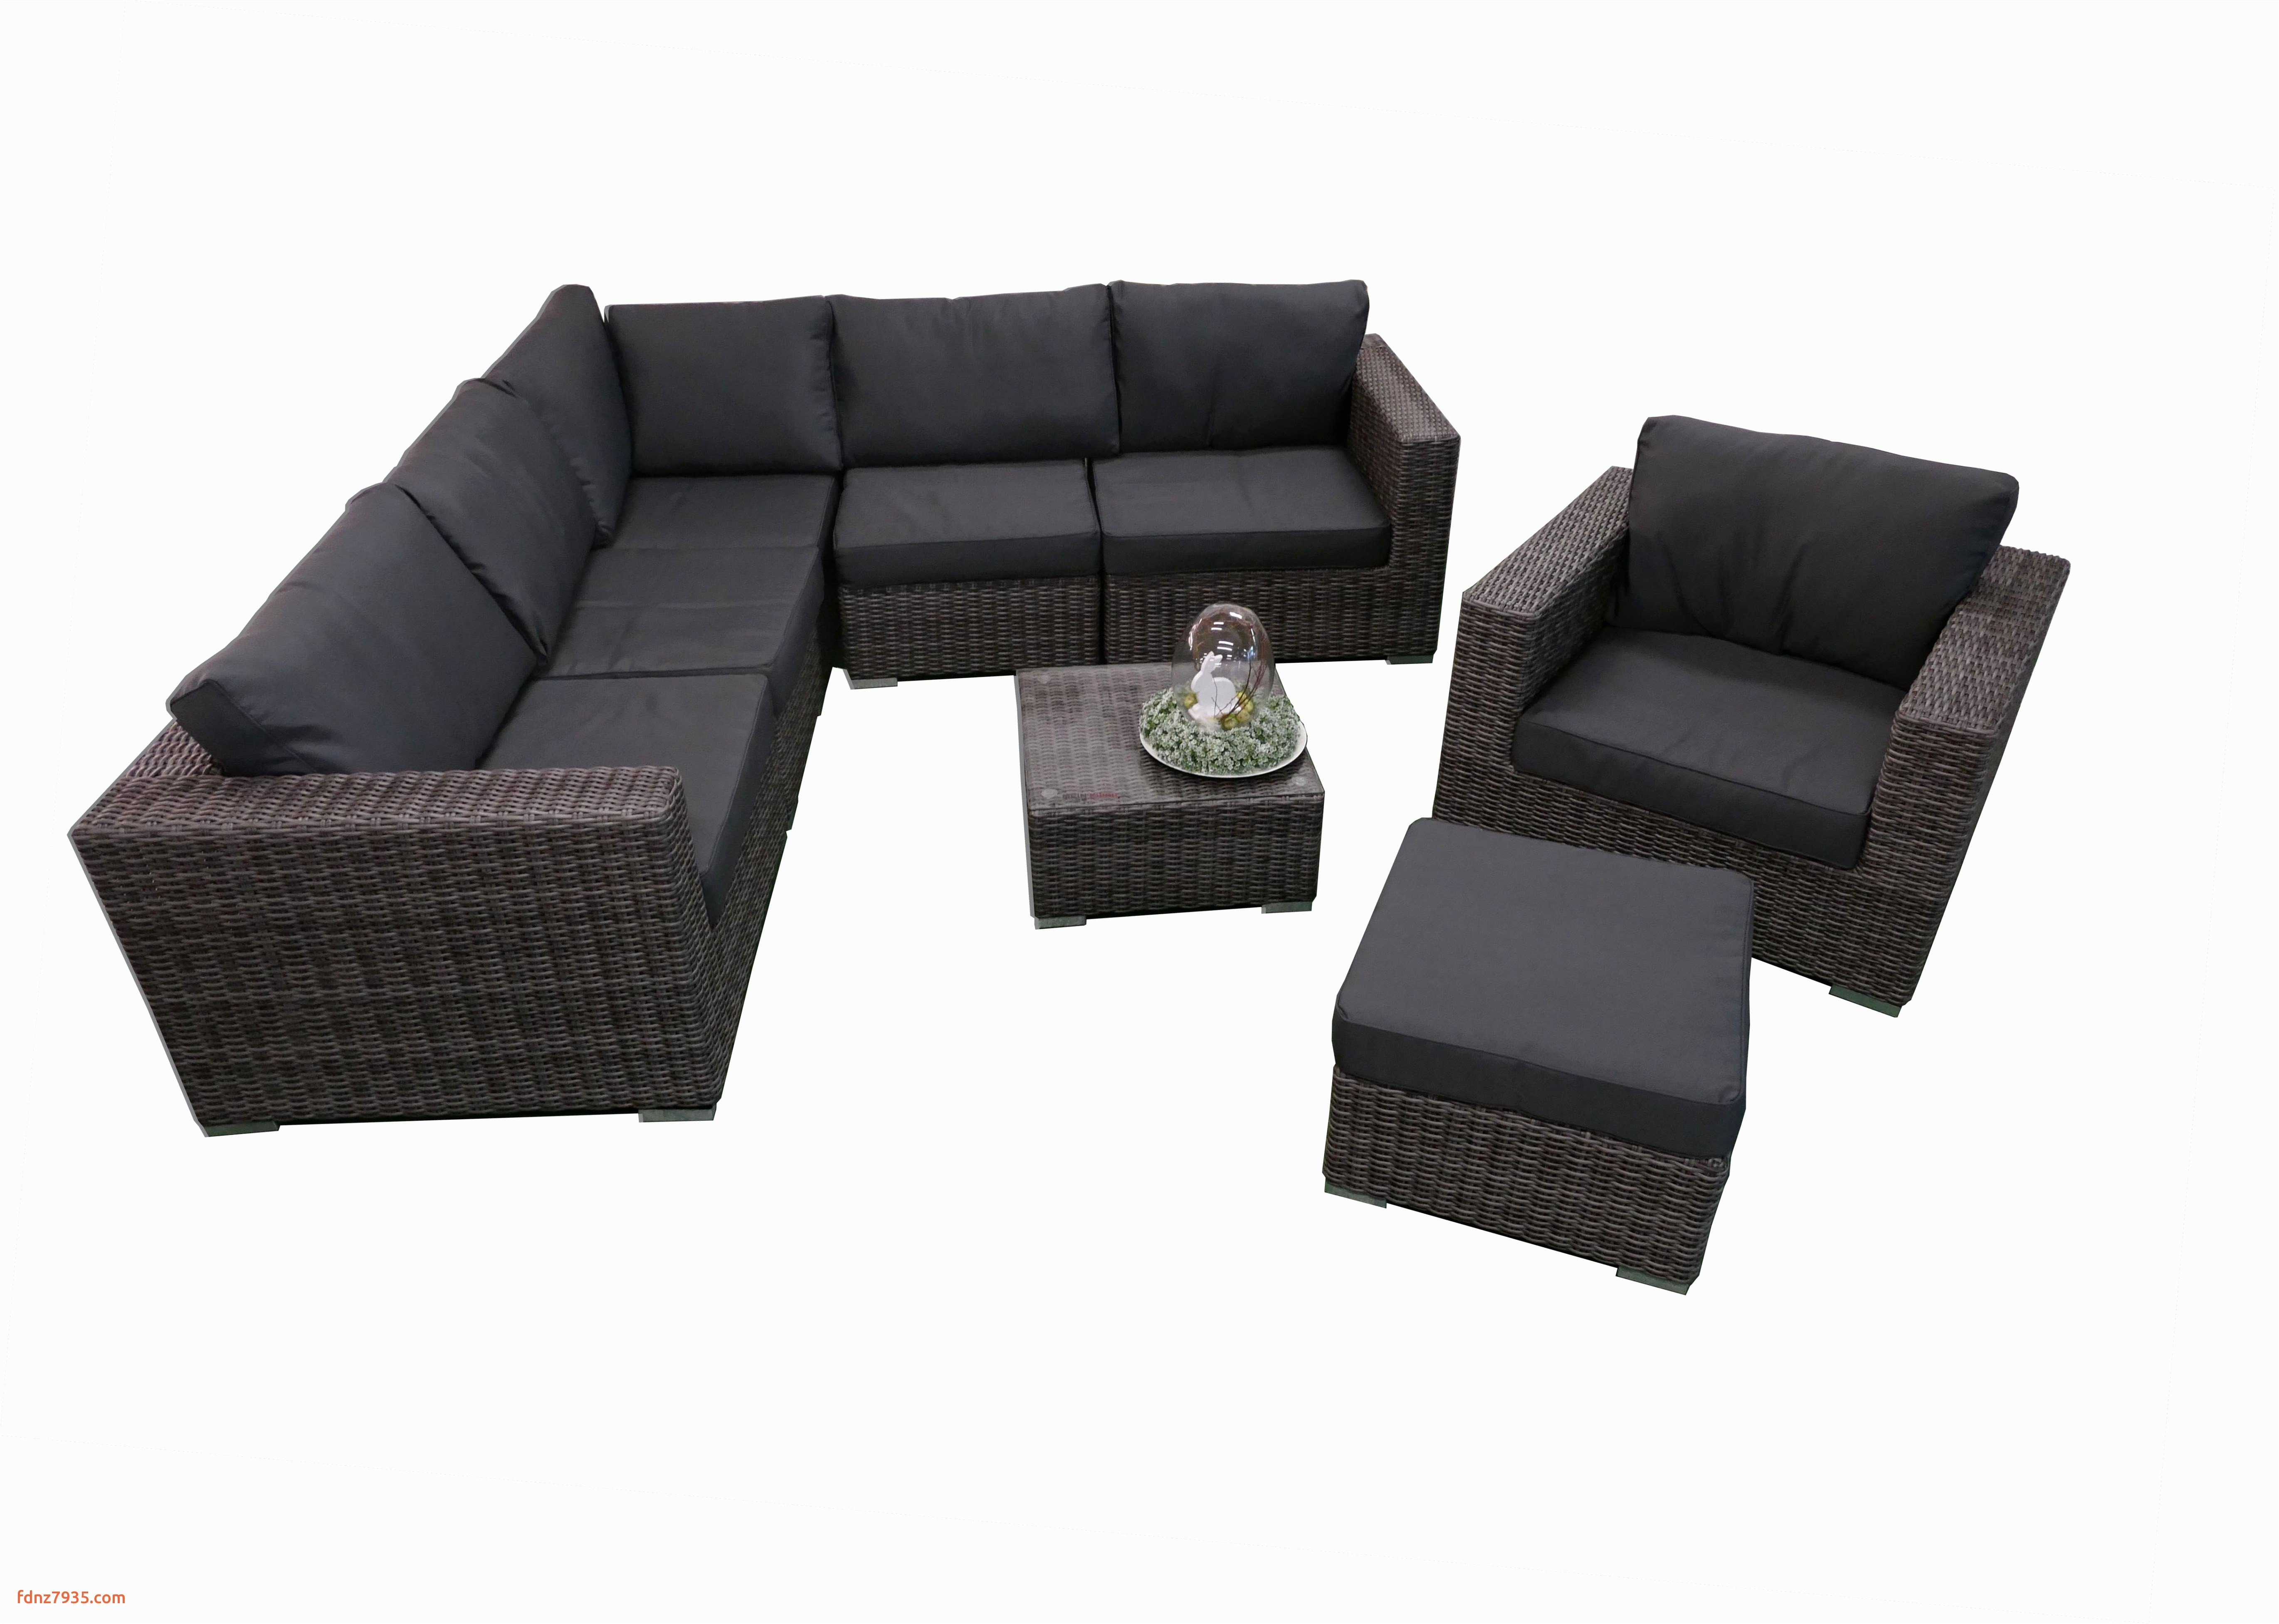 black leather recliner sofa new luxurios wicker outdoor sofa 0d patio chairs sale replacement